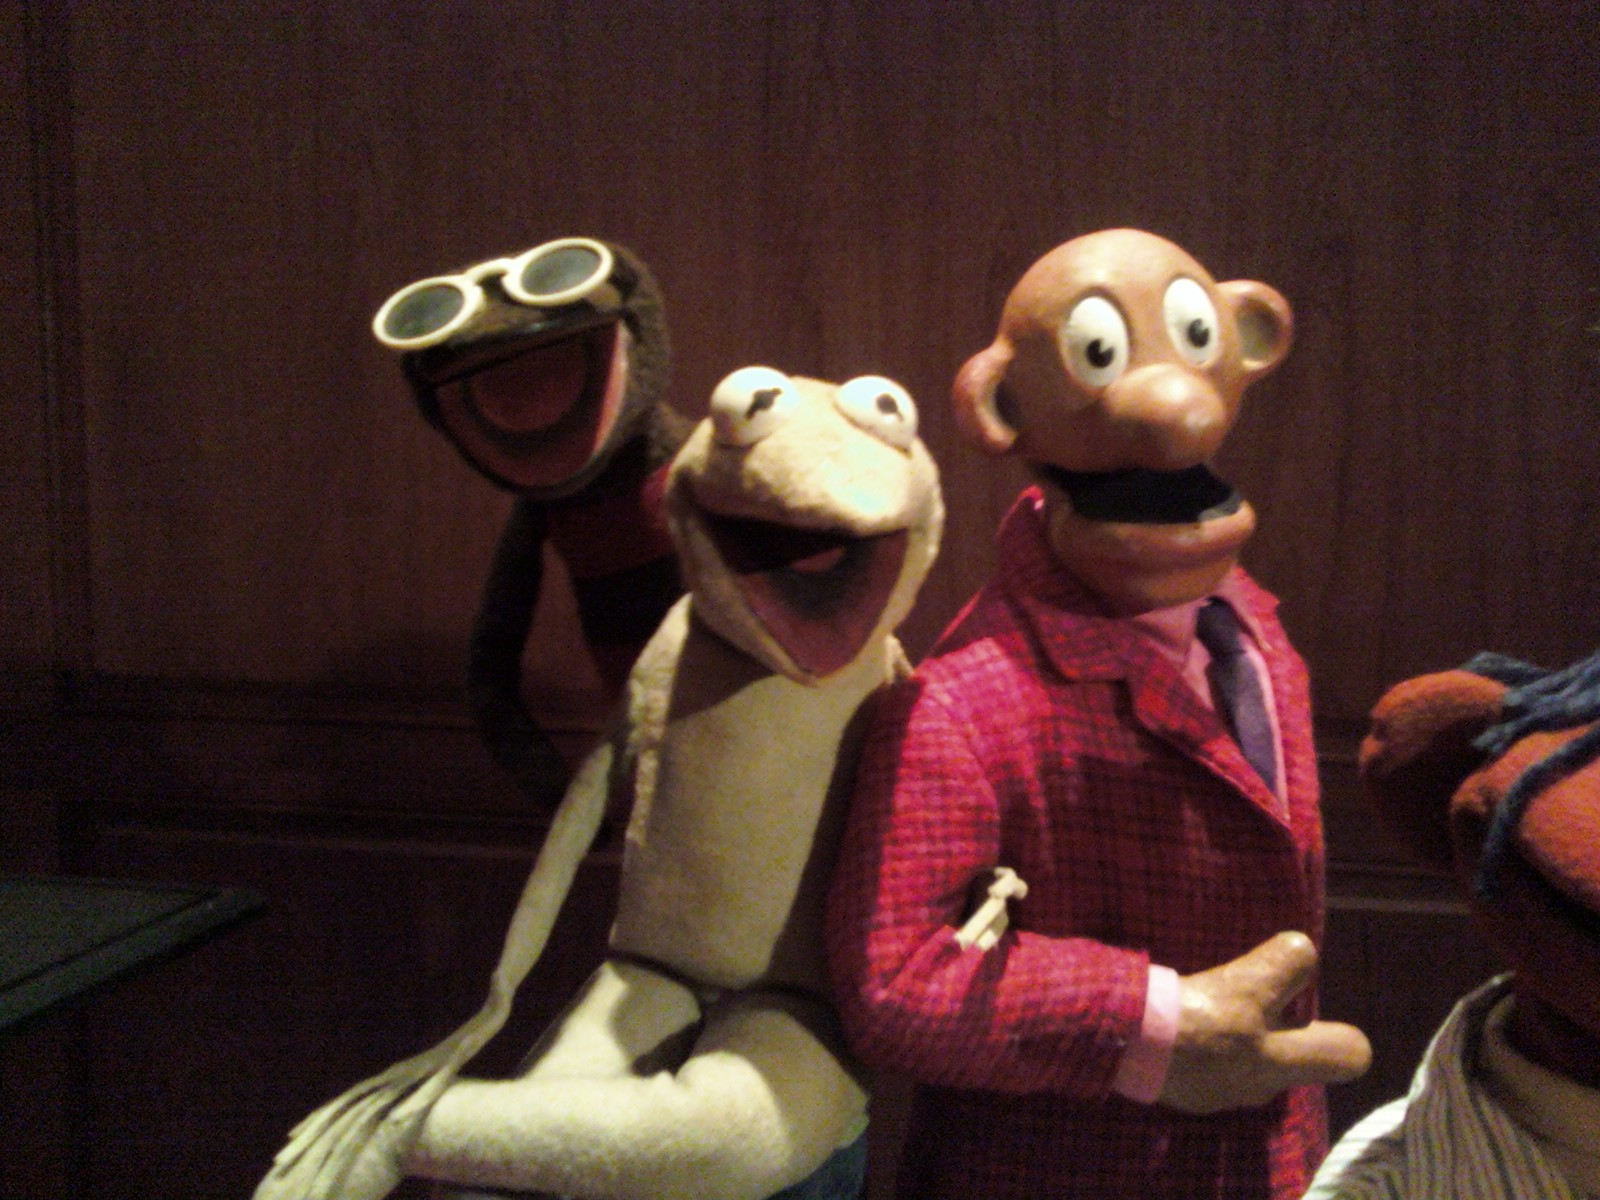 13c The Muppets: The Adult Origins Of 'Mahna Mahna' And More Things You Didn't Know